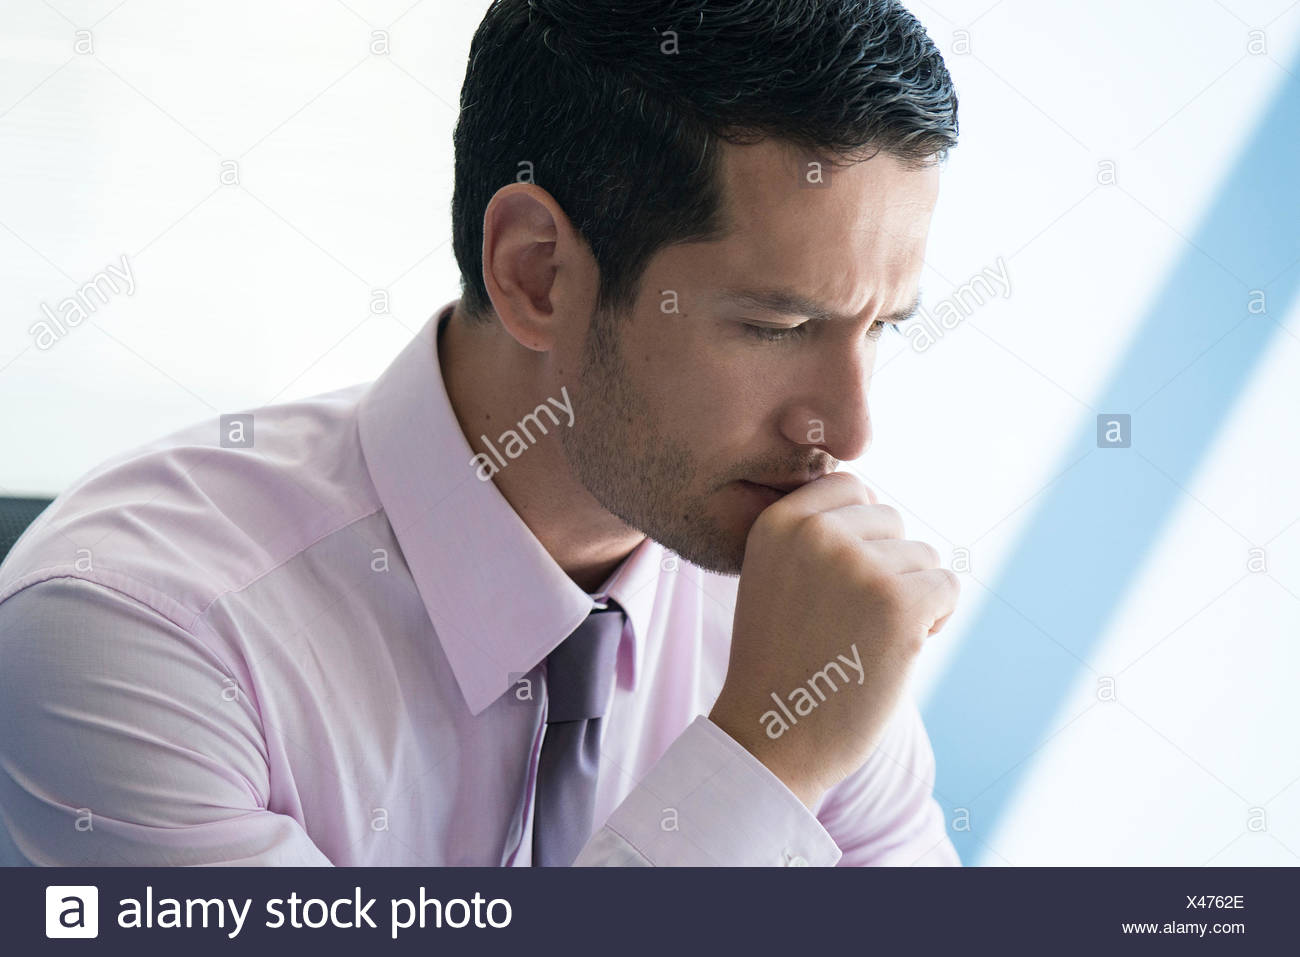 Businessman with hand under chin with look of concern - Stock Image